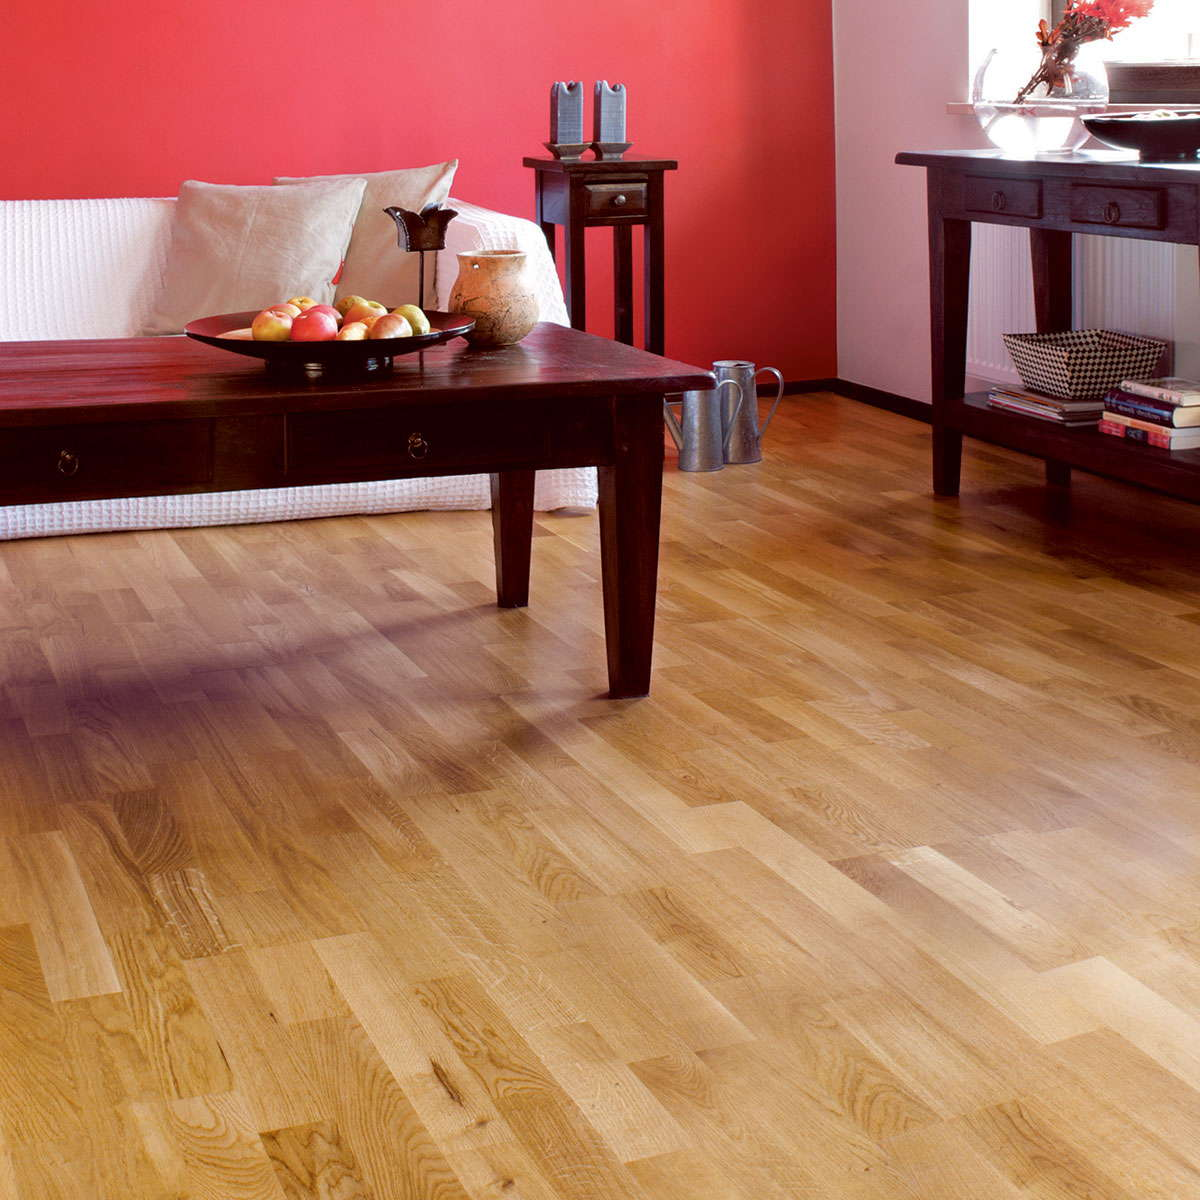 natura oak brooklyn engineered wood flooring. Black Bedroom Furniture Sets. Home Design Ideas